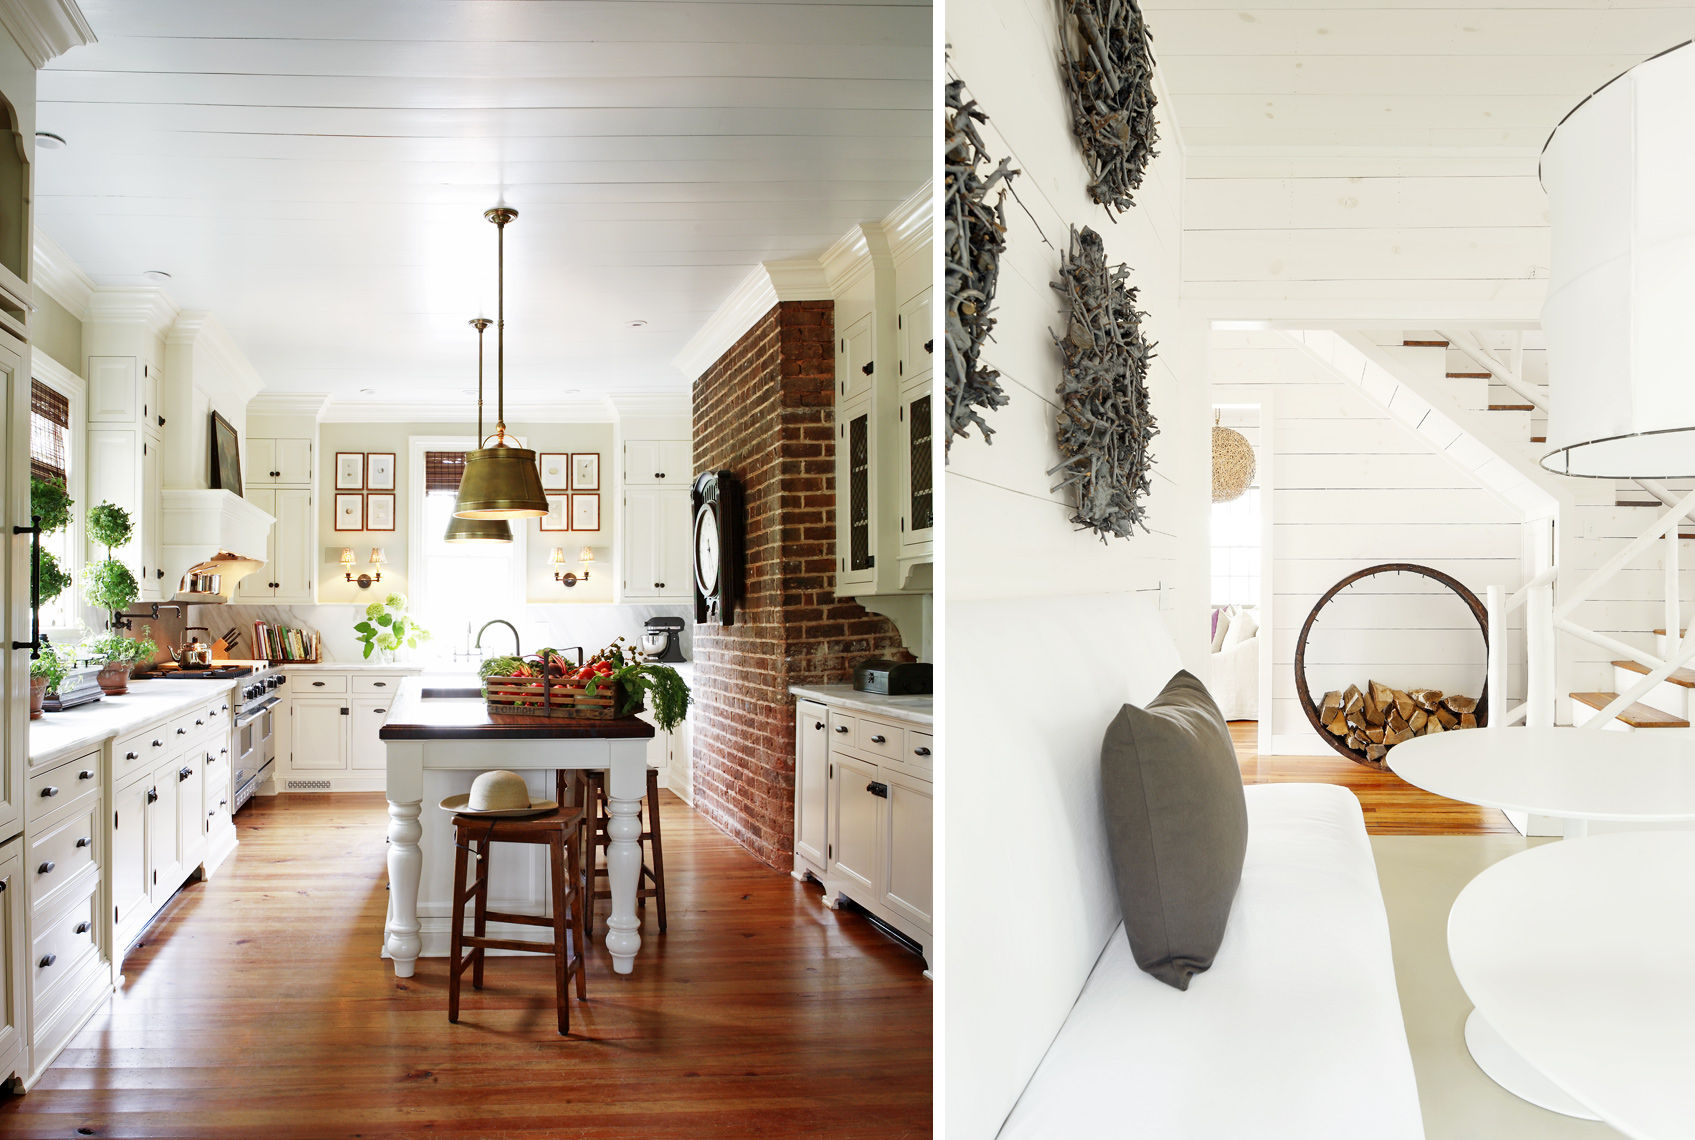 Jamie McPherson kitchen and Kay Douglass lakehouse photographed by Mali Azima.